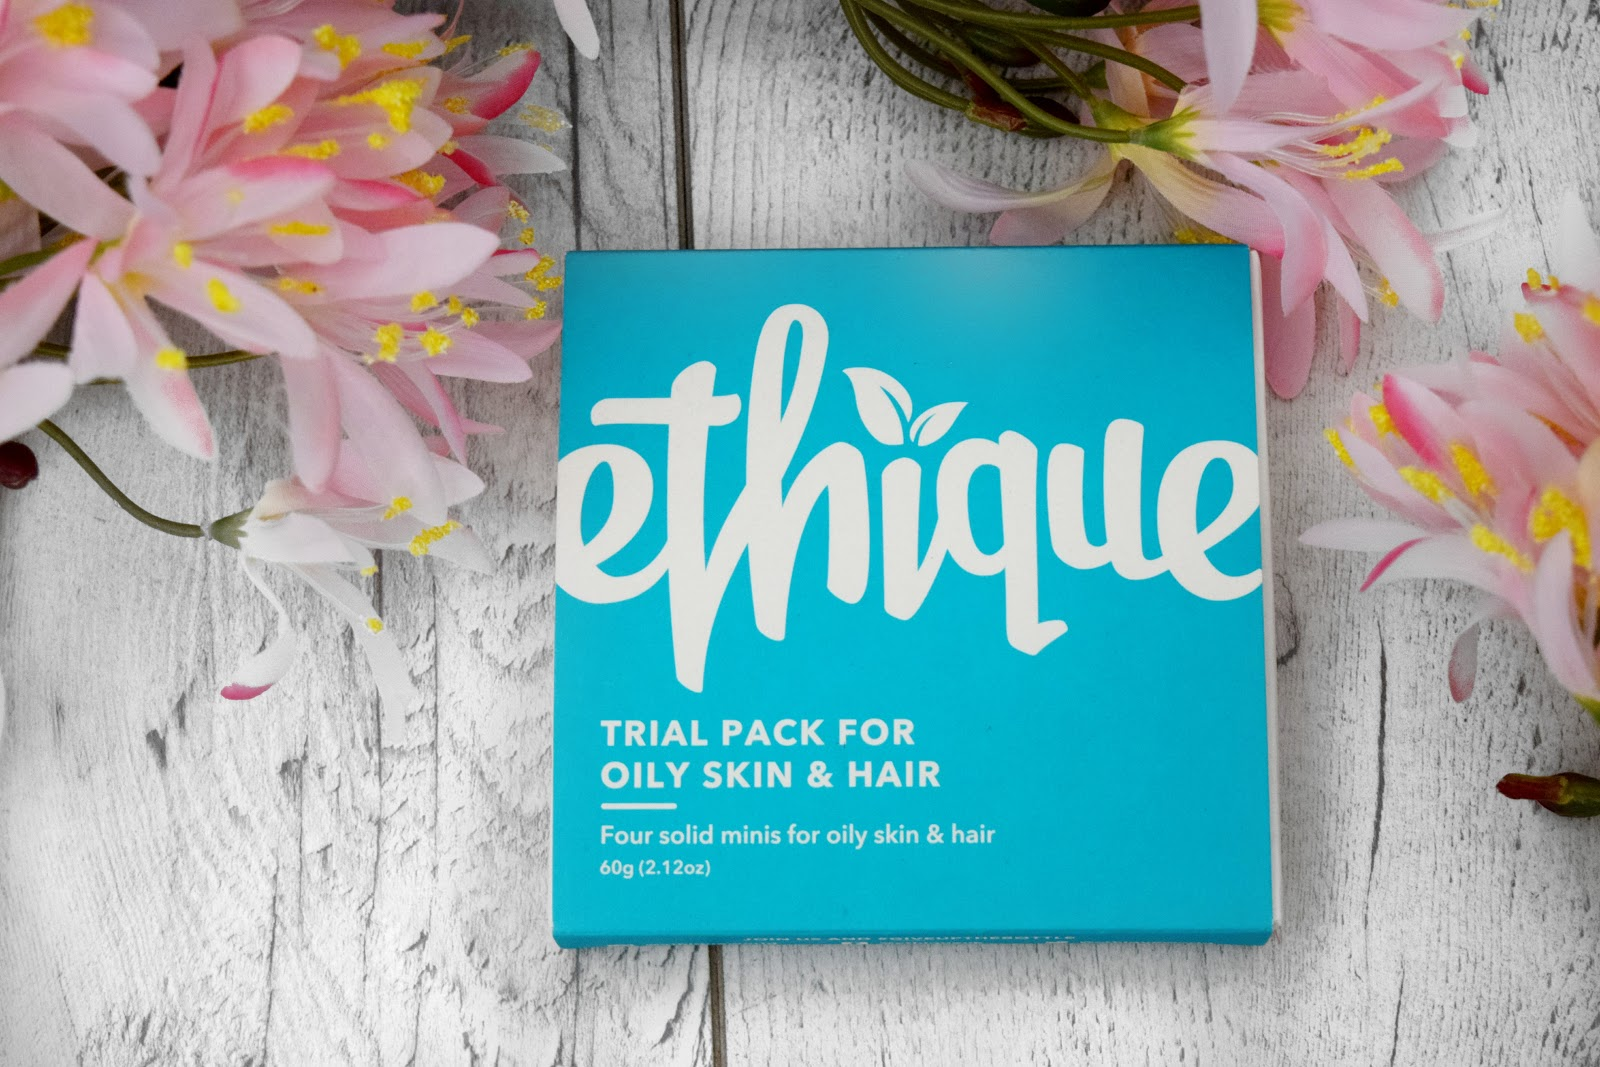 Ethique Trial Pack Oily Hair